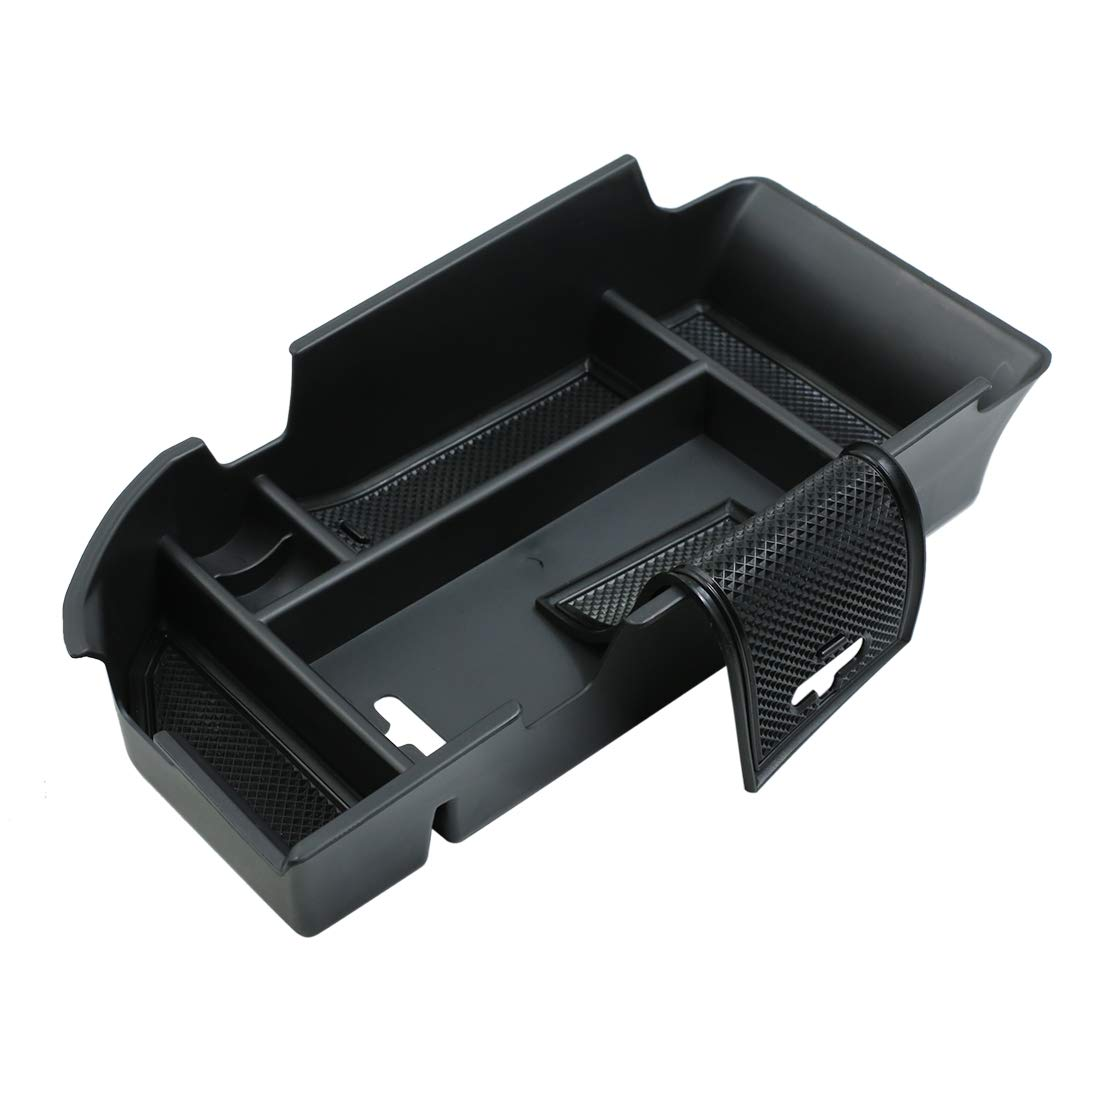 X AUTOHAUX Center Console Organizer Armrest Storage Box Insert Tray for Toyota Camry 2018